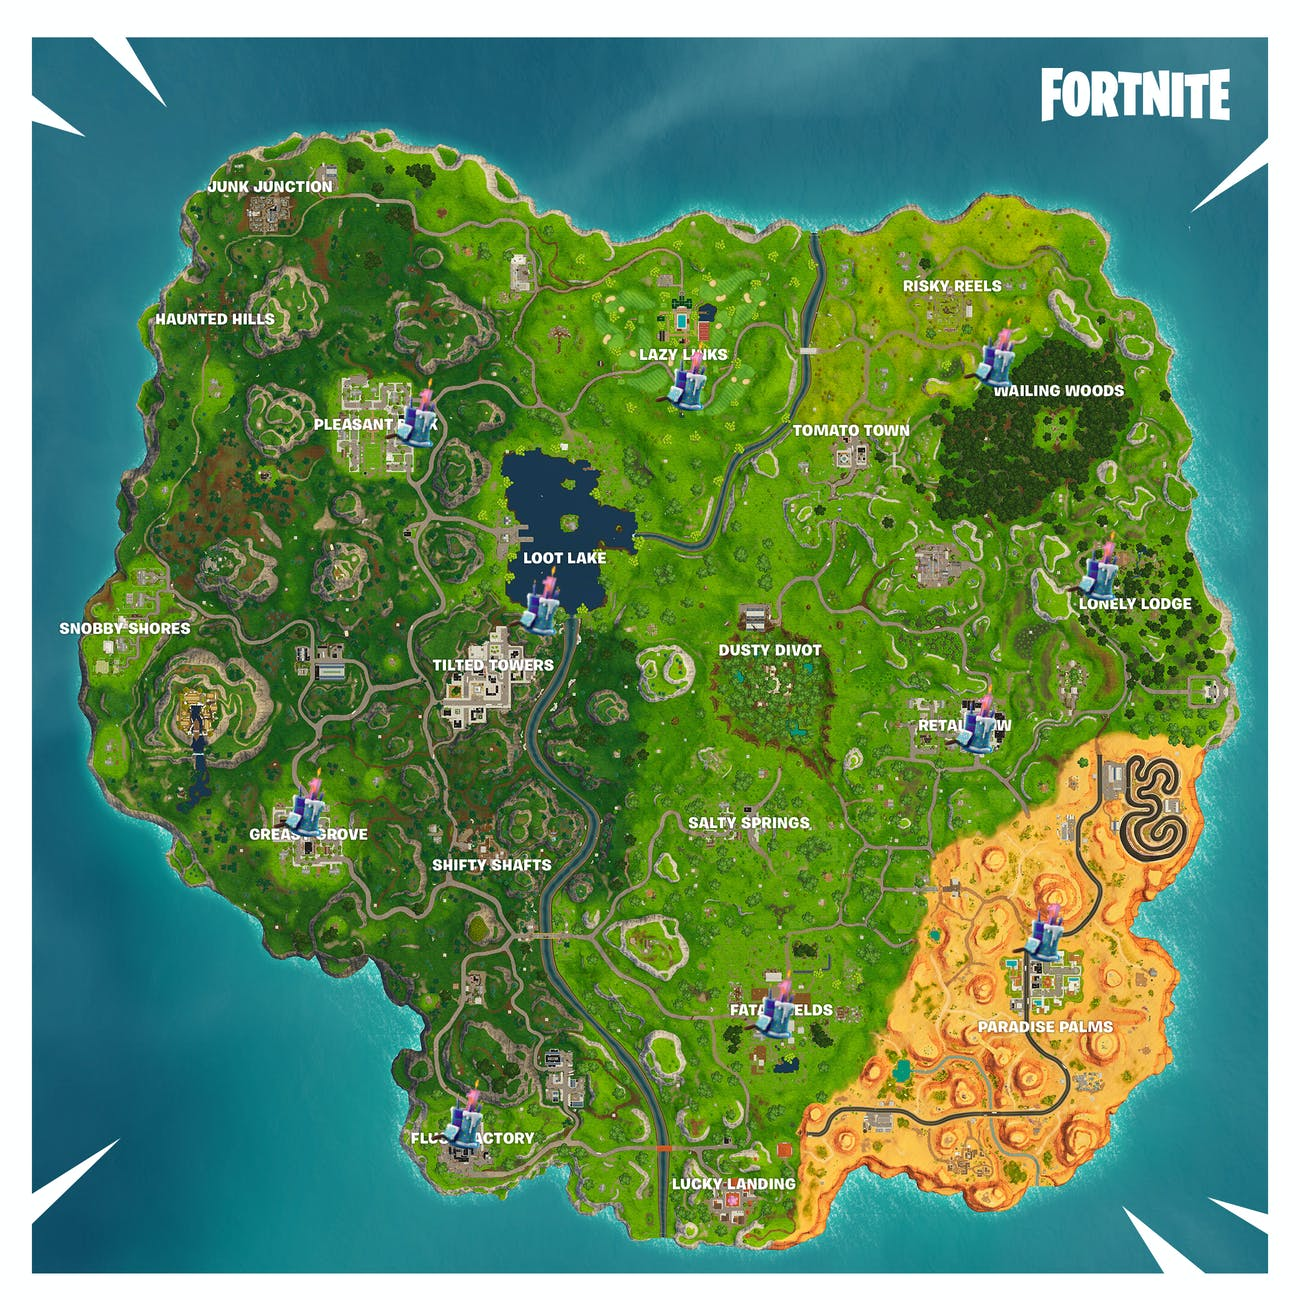 Fortnite' Birthday Cake Locations: Where to Find Every Cake ... on map quotes, map making, map for us, map with title, map project ideas, map cincinnati ohio, map in europe, map guest book, map my route, map party decor, map with mountains, map niagara on the lake, map in spanish, map from mexico, map with states, map facebook covers, map themed paper products, map timbuktu, map photography, map of the,